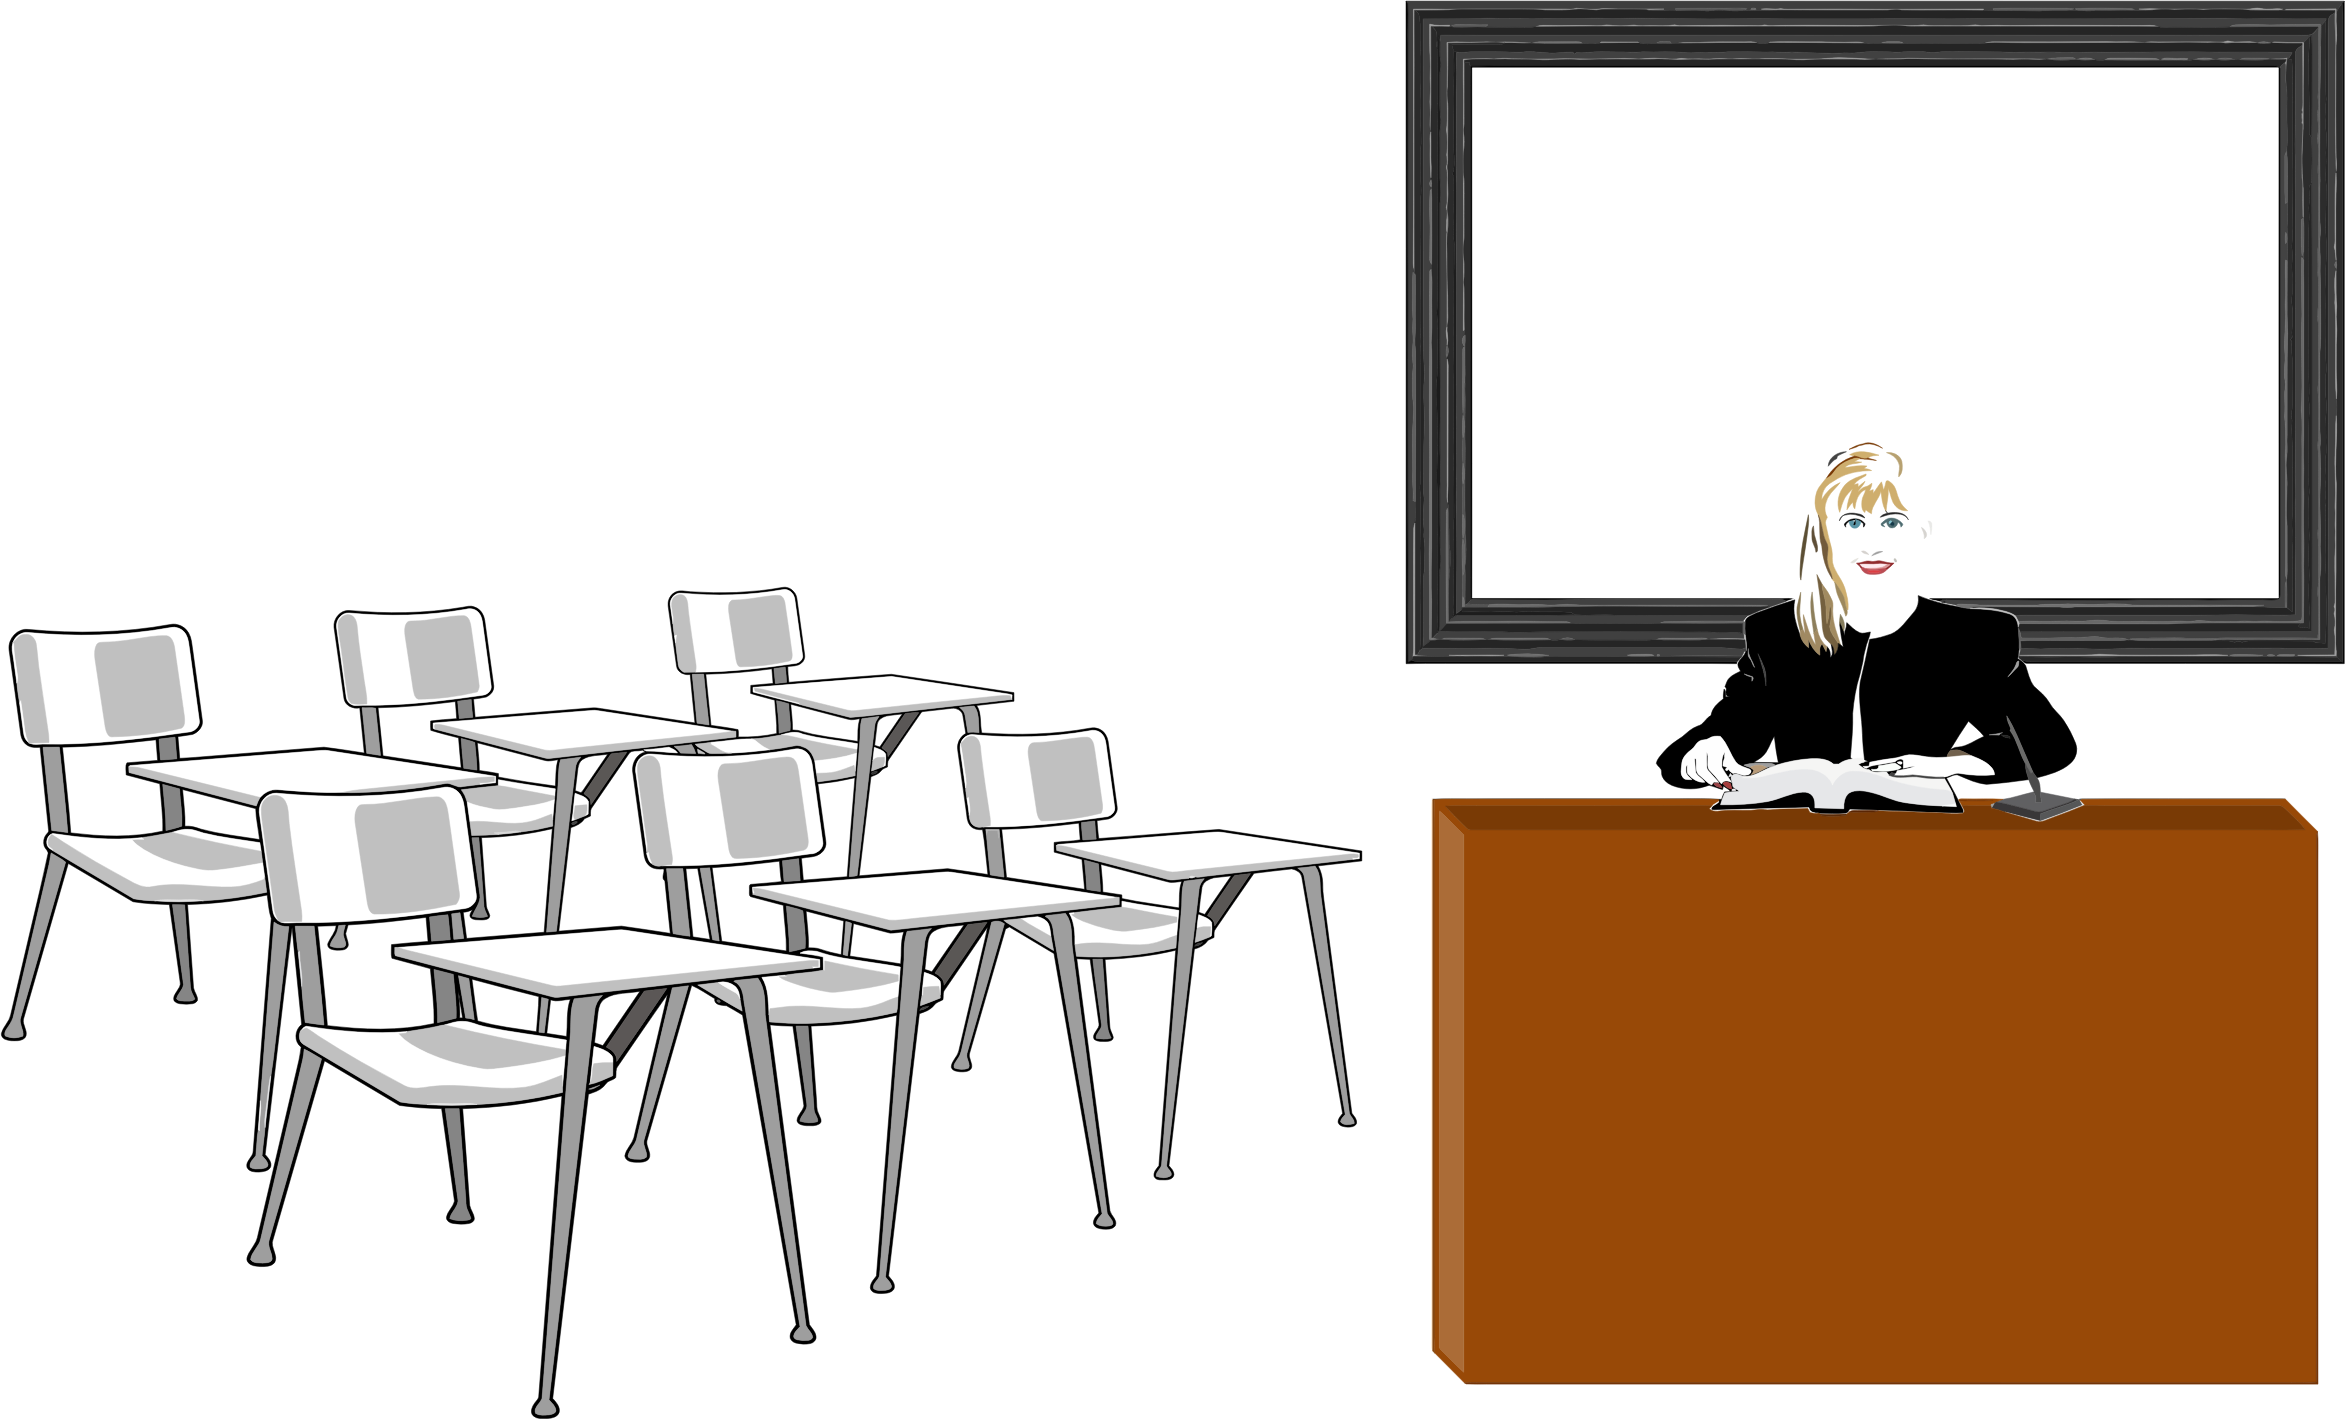 Transparent teacher classroom. Collection of free coursed